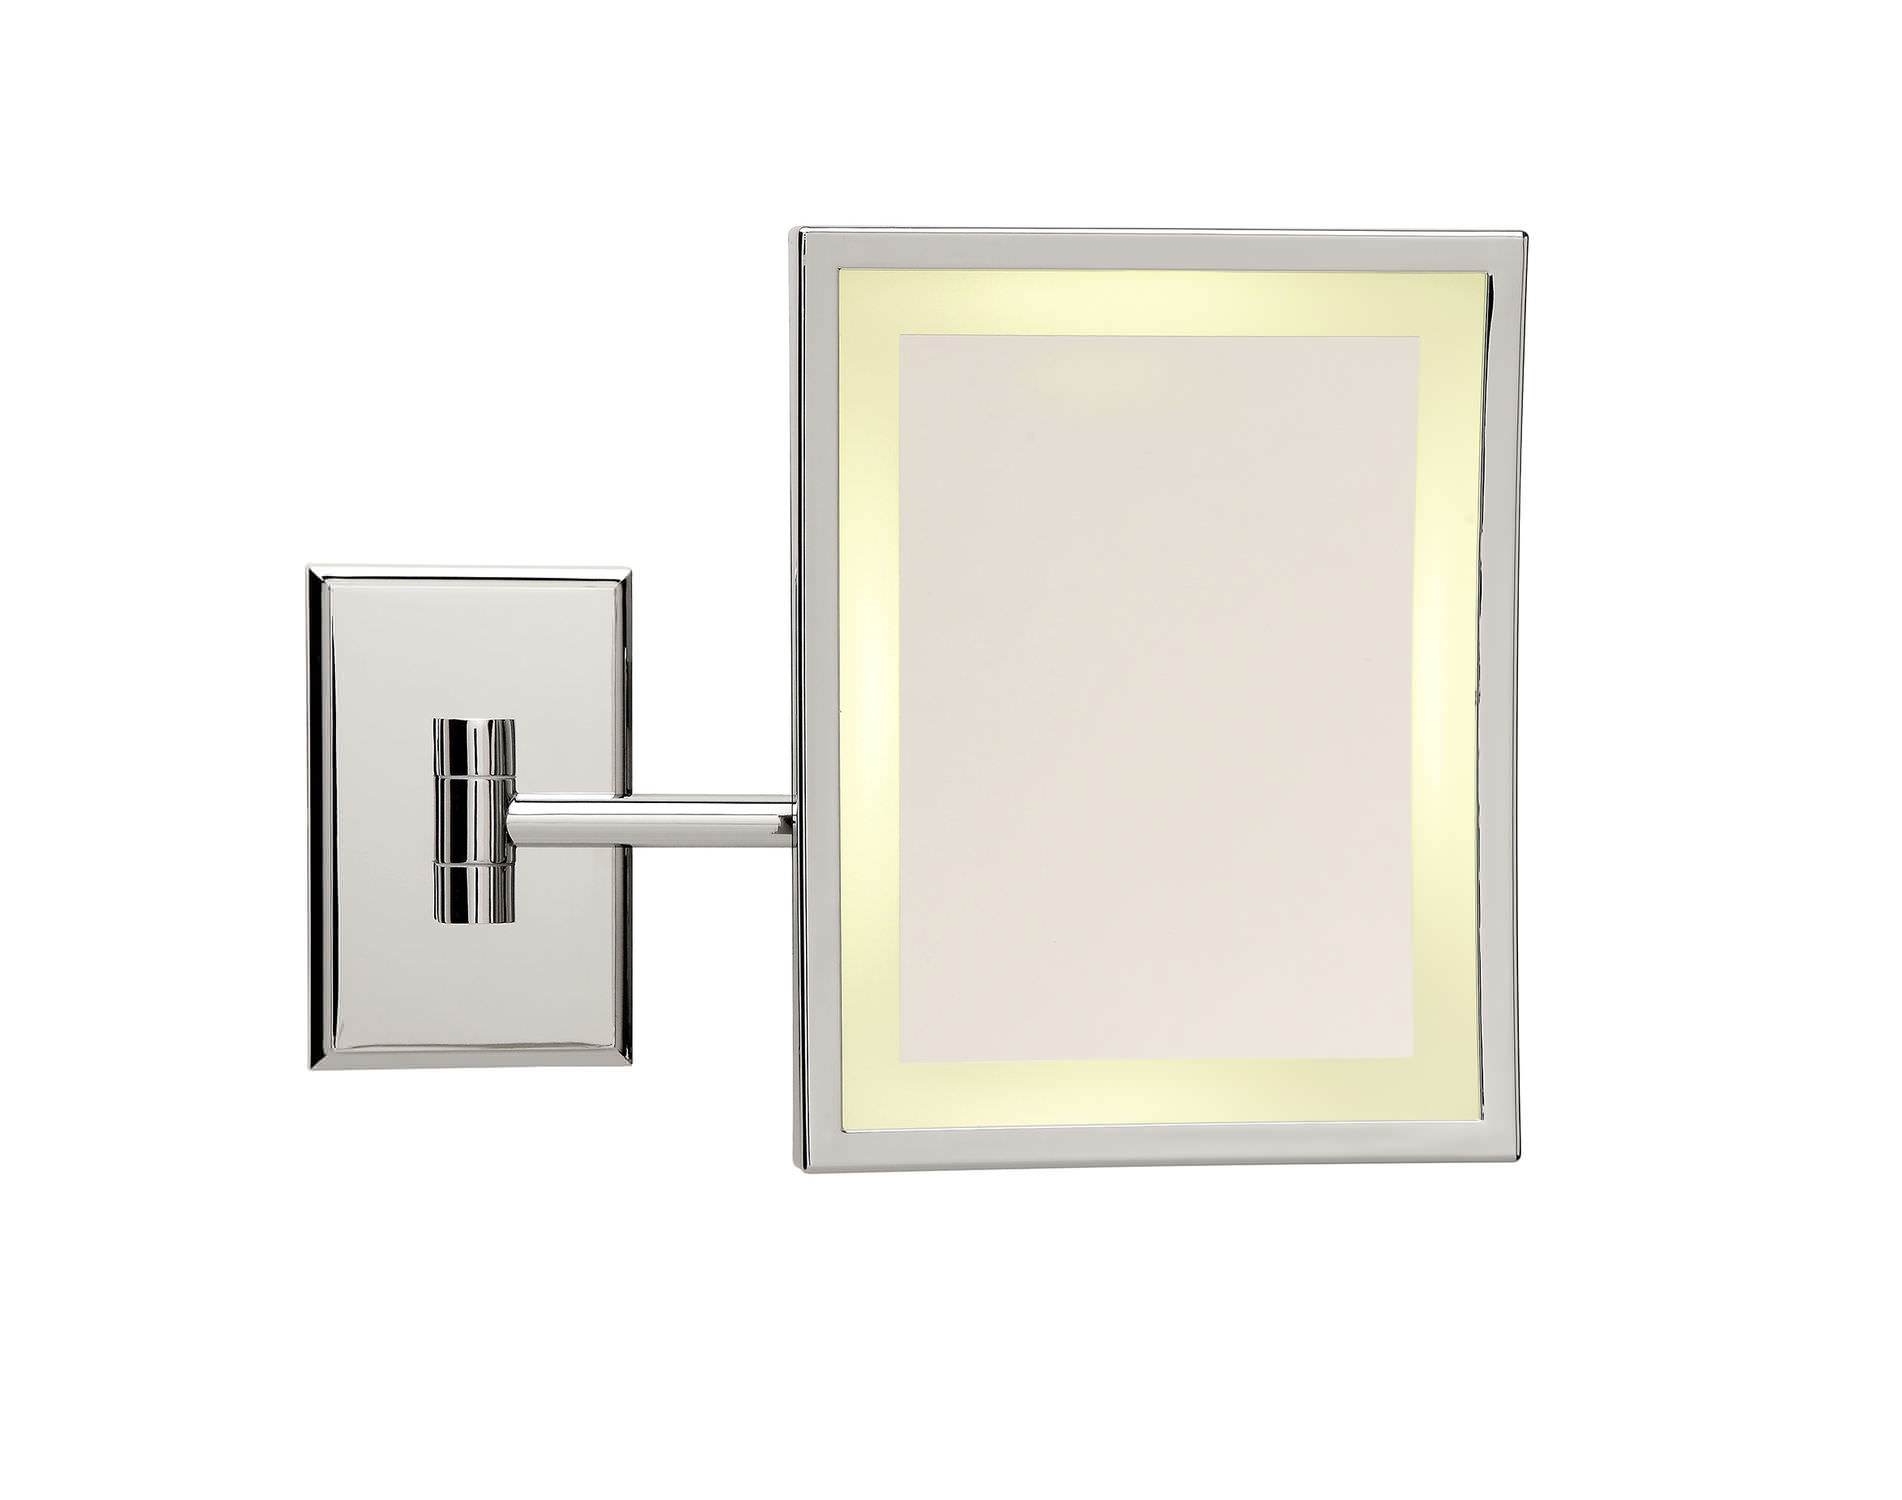 Wall mounted magnifying mirrors for bathrooms - Wall Mounted Mirror Contemporary Rectangular Magnifying Square Lm Bs